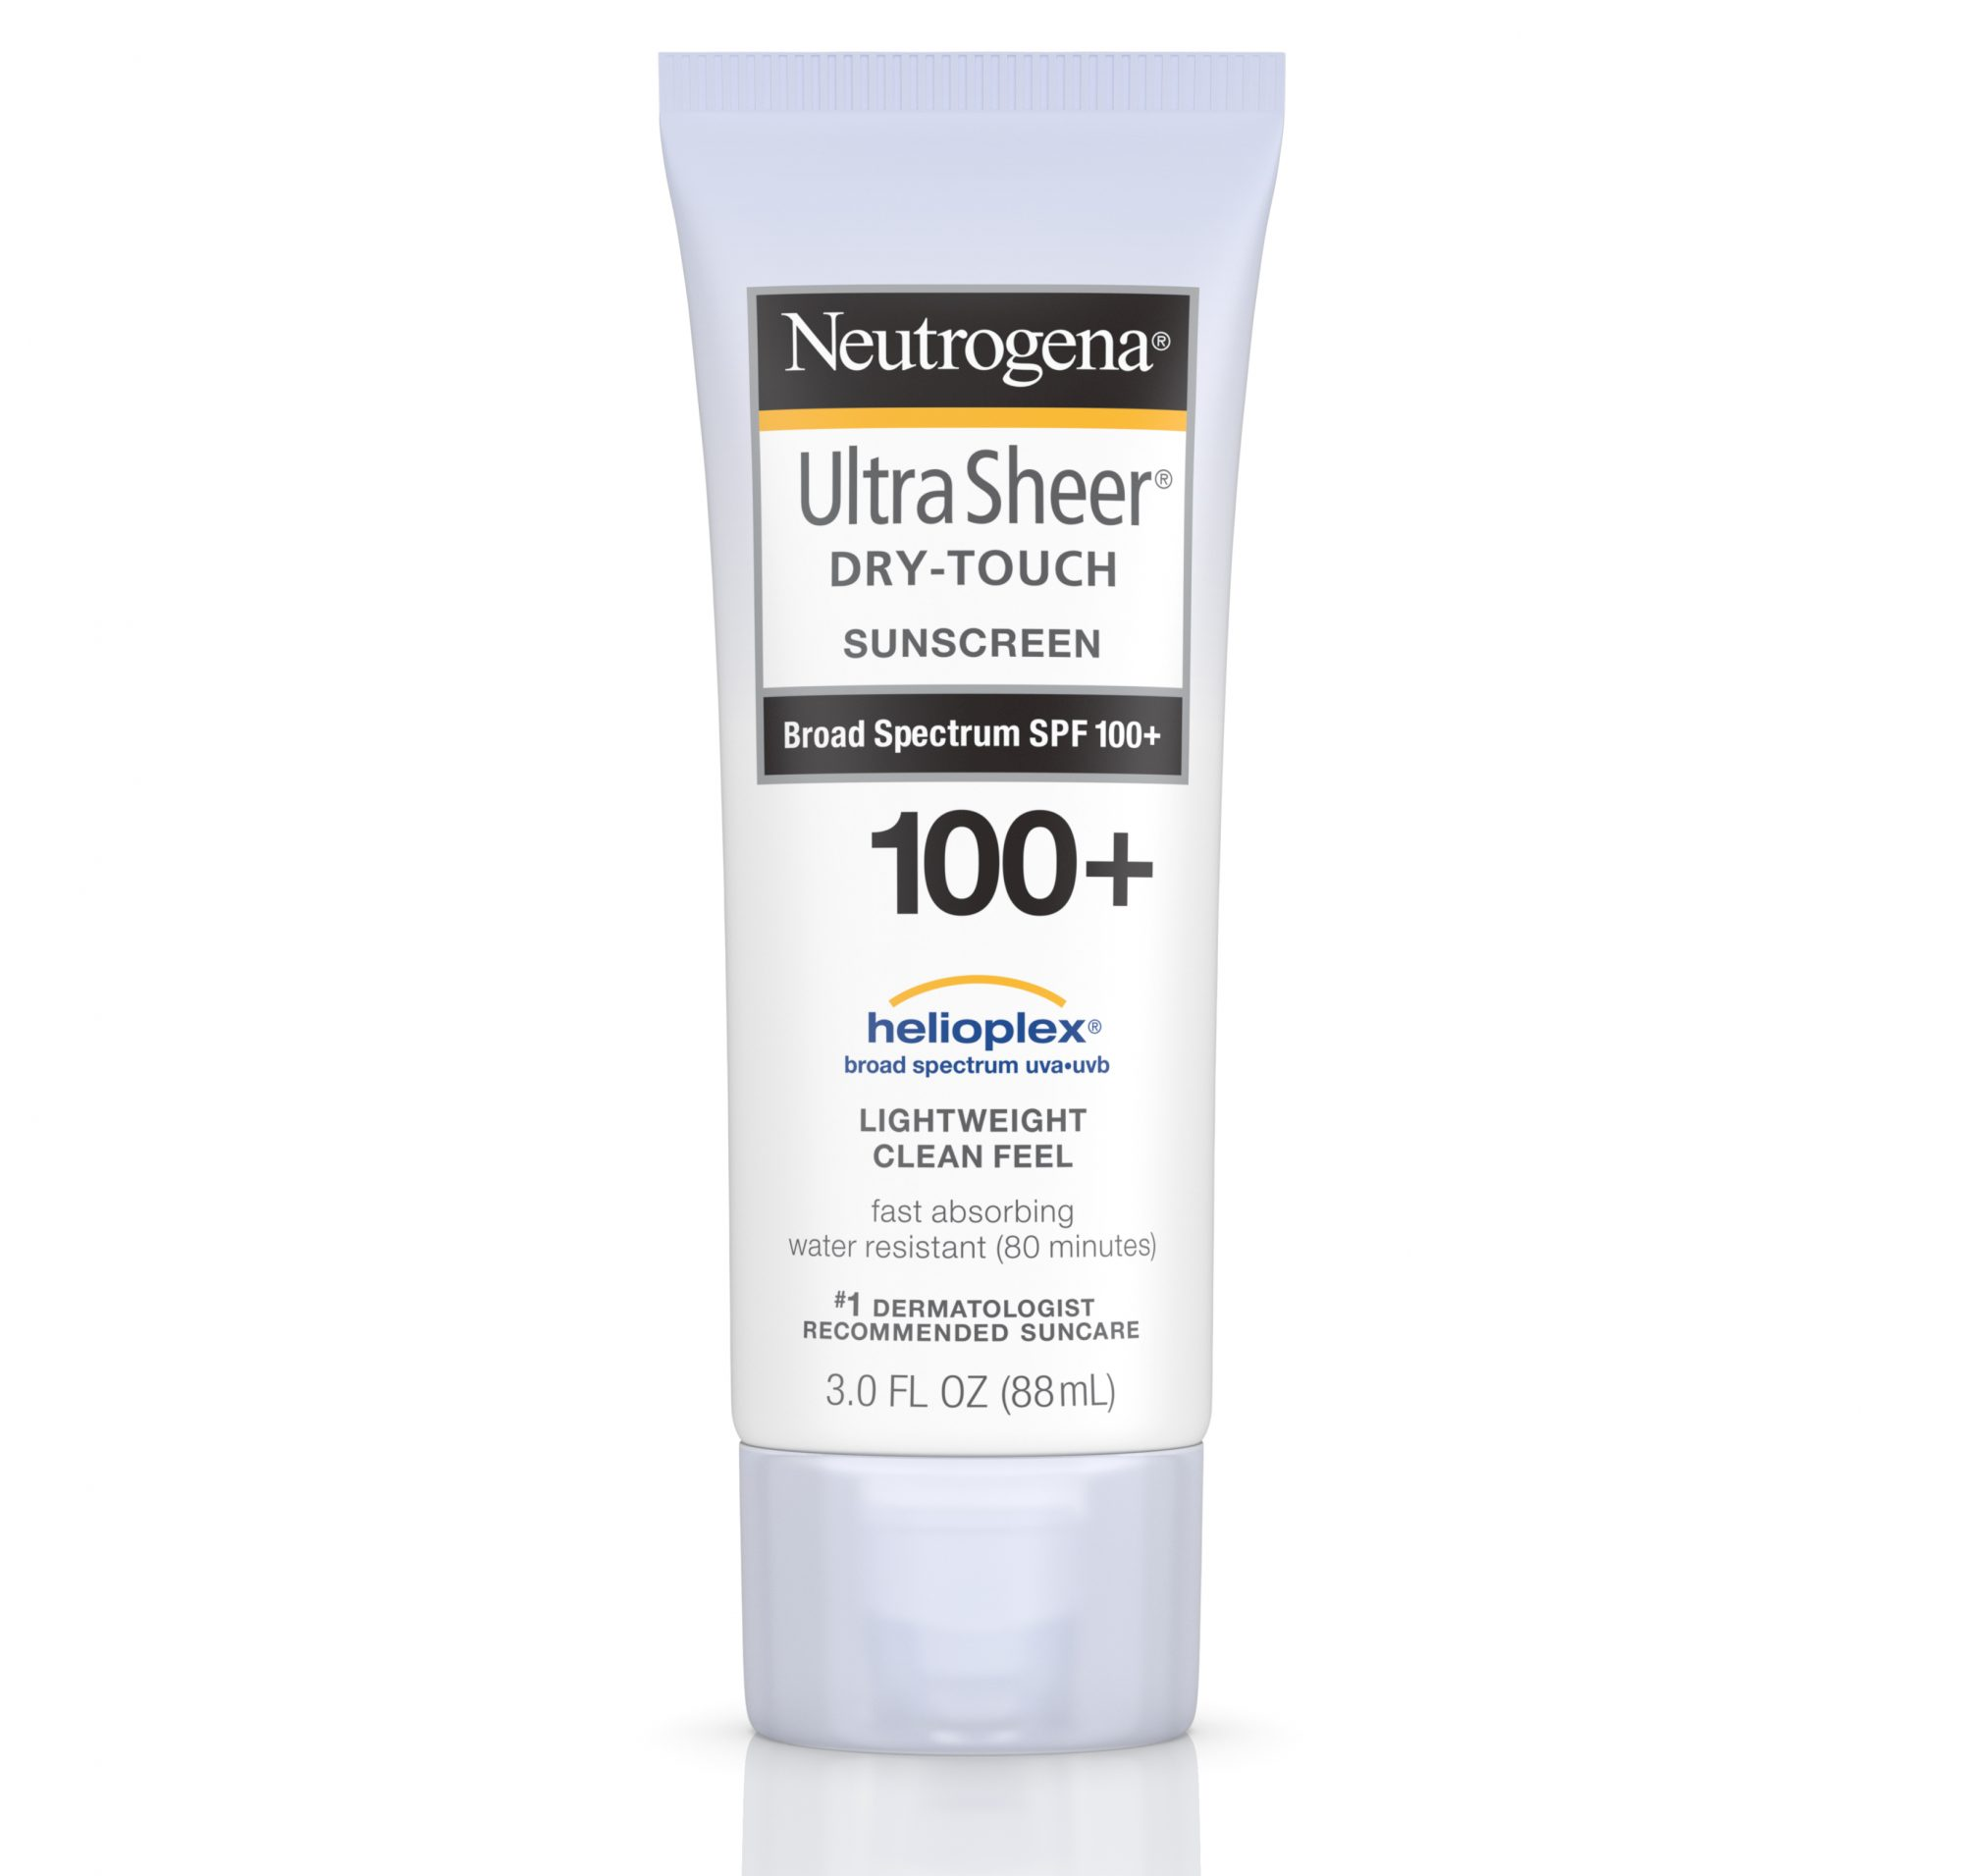 neutrogena. contact jackie_fields@peoplemag.com for usage.